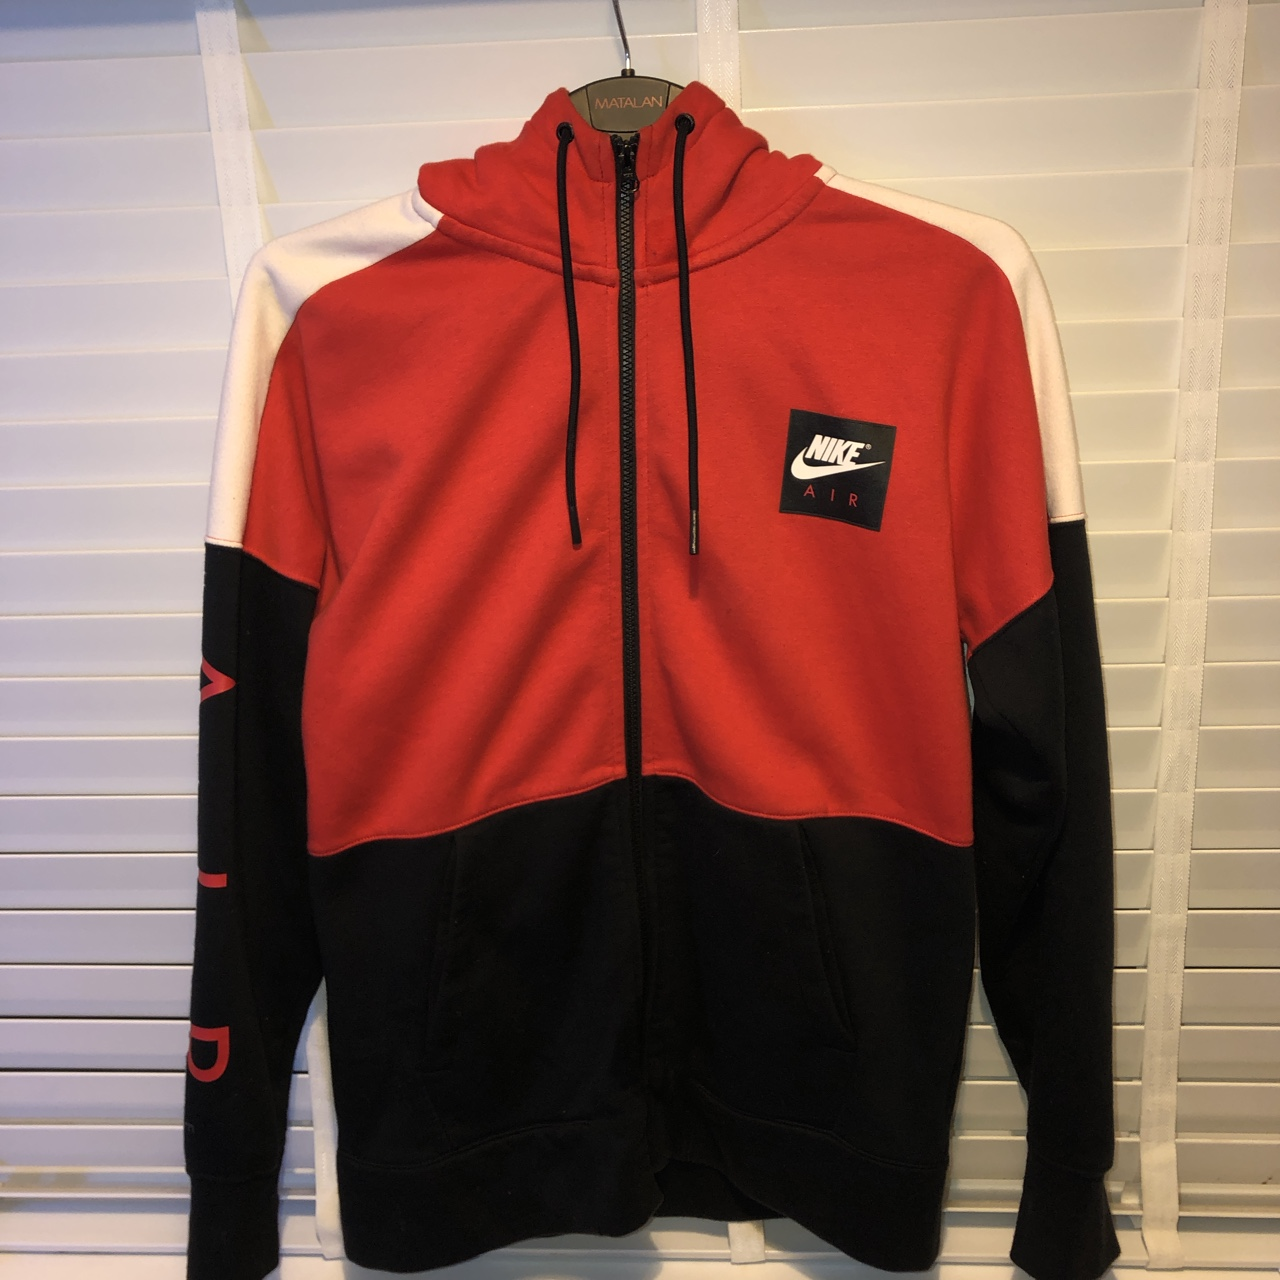 Nike air red, black and white zip up